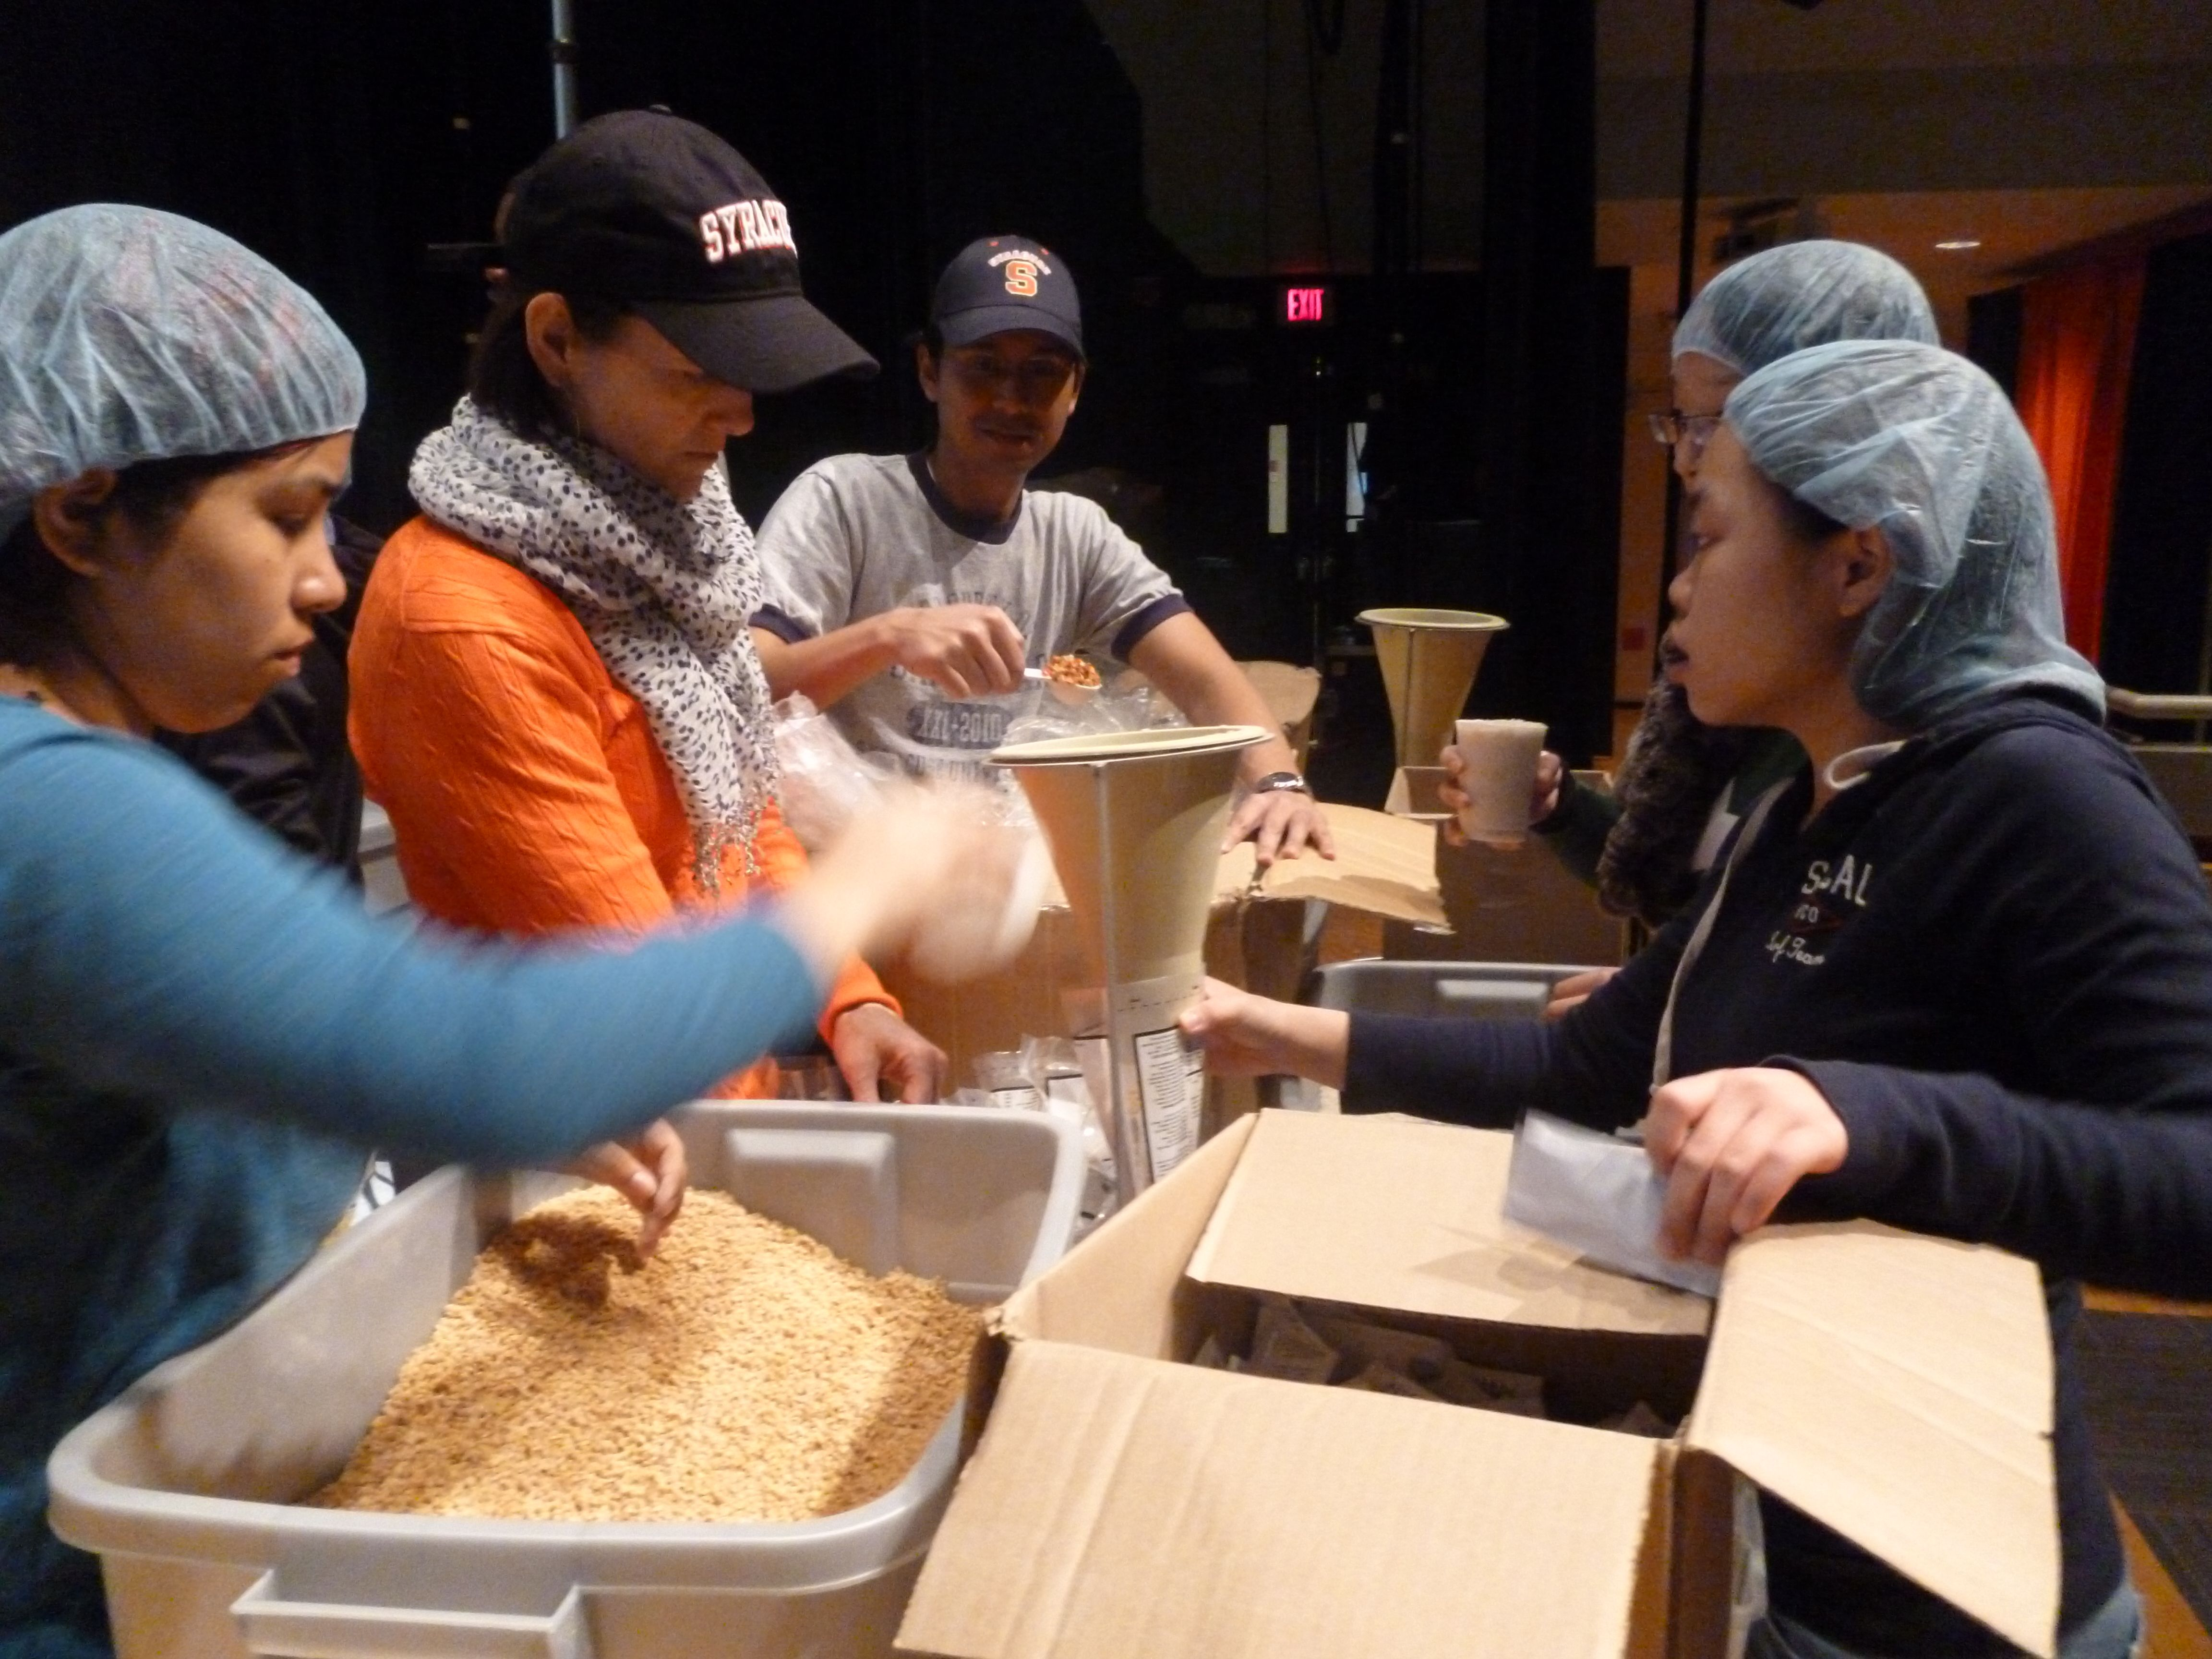 Students and staff working together at the Stop Hunger Now food packaging event.